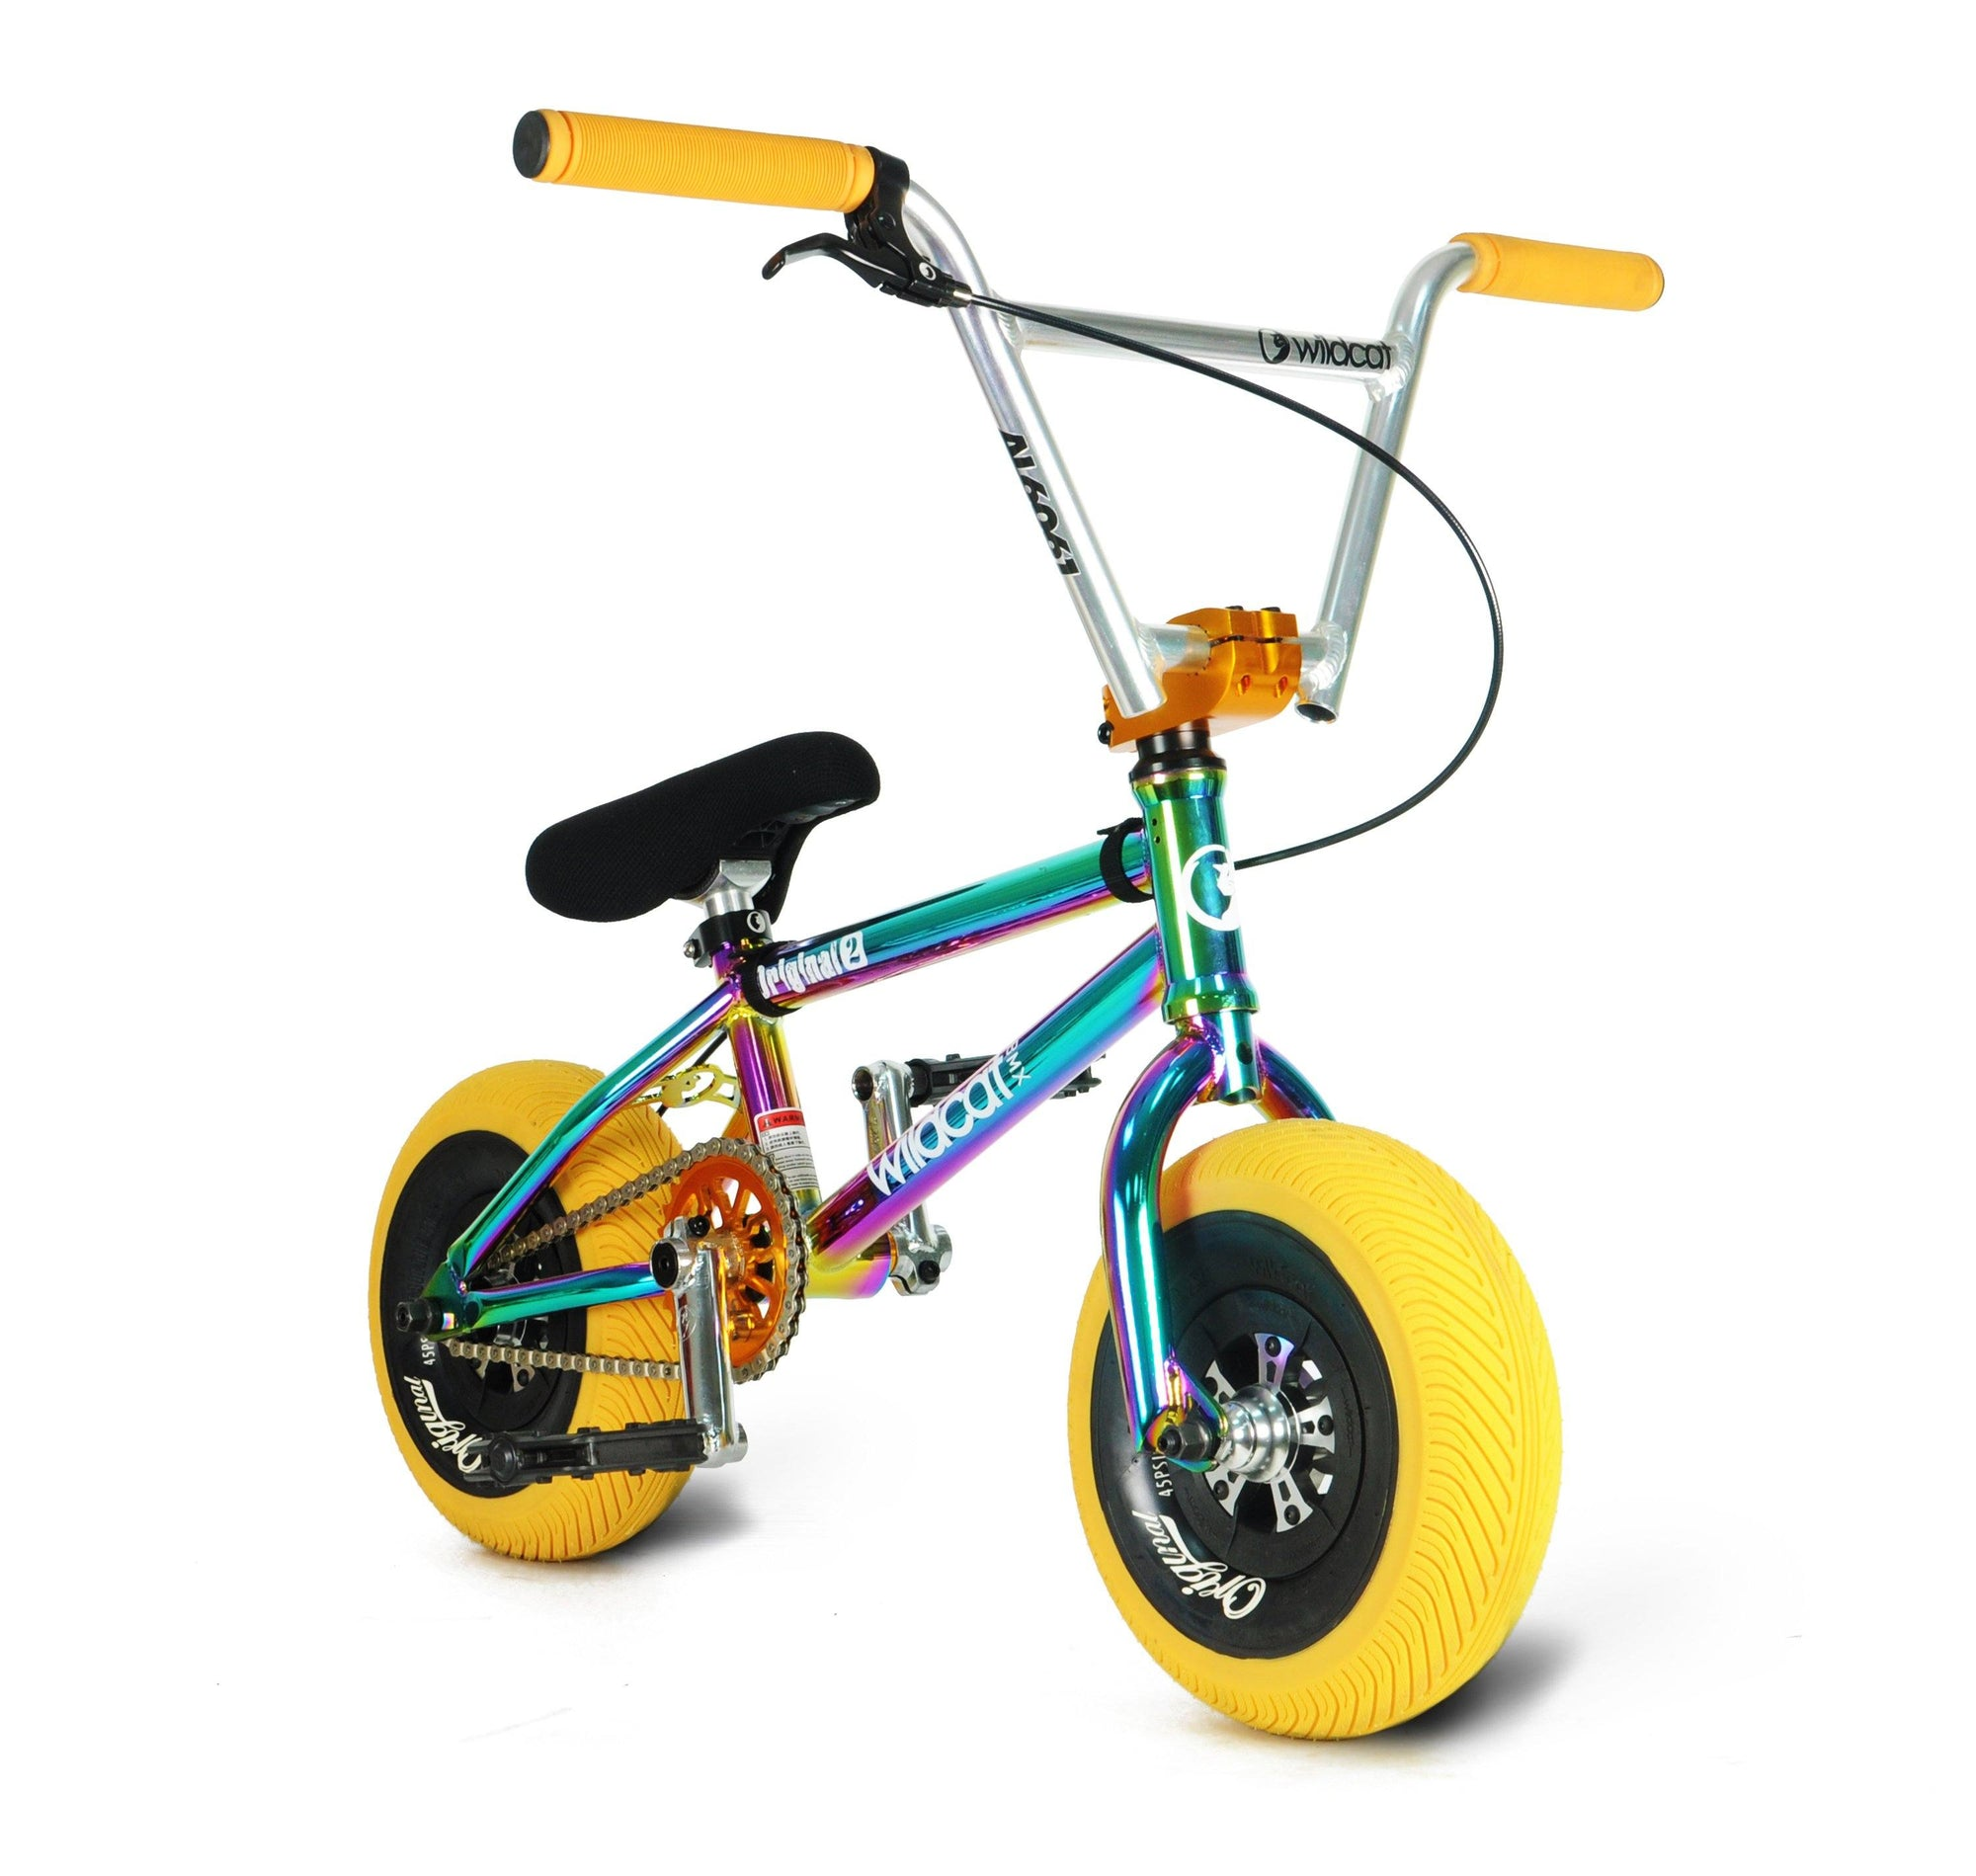 Pro Series Joker Gum - FREE Disc Brake & Pro Turbo Wheel Mini BMX Wildcat Mini BMX Disc Brakes